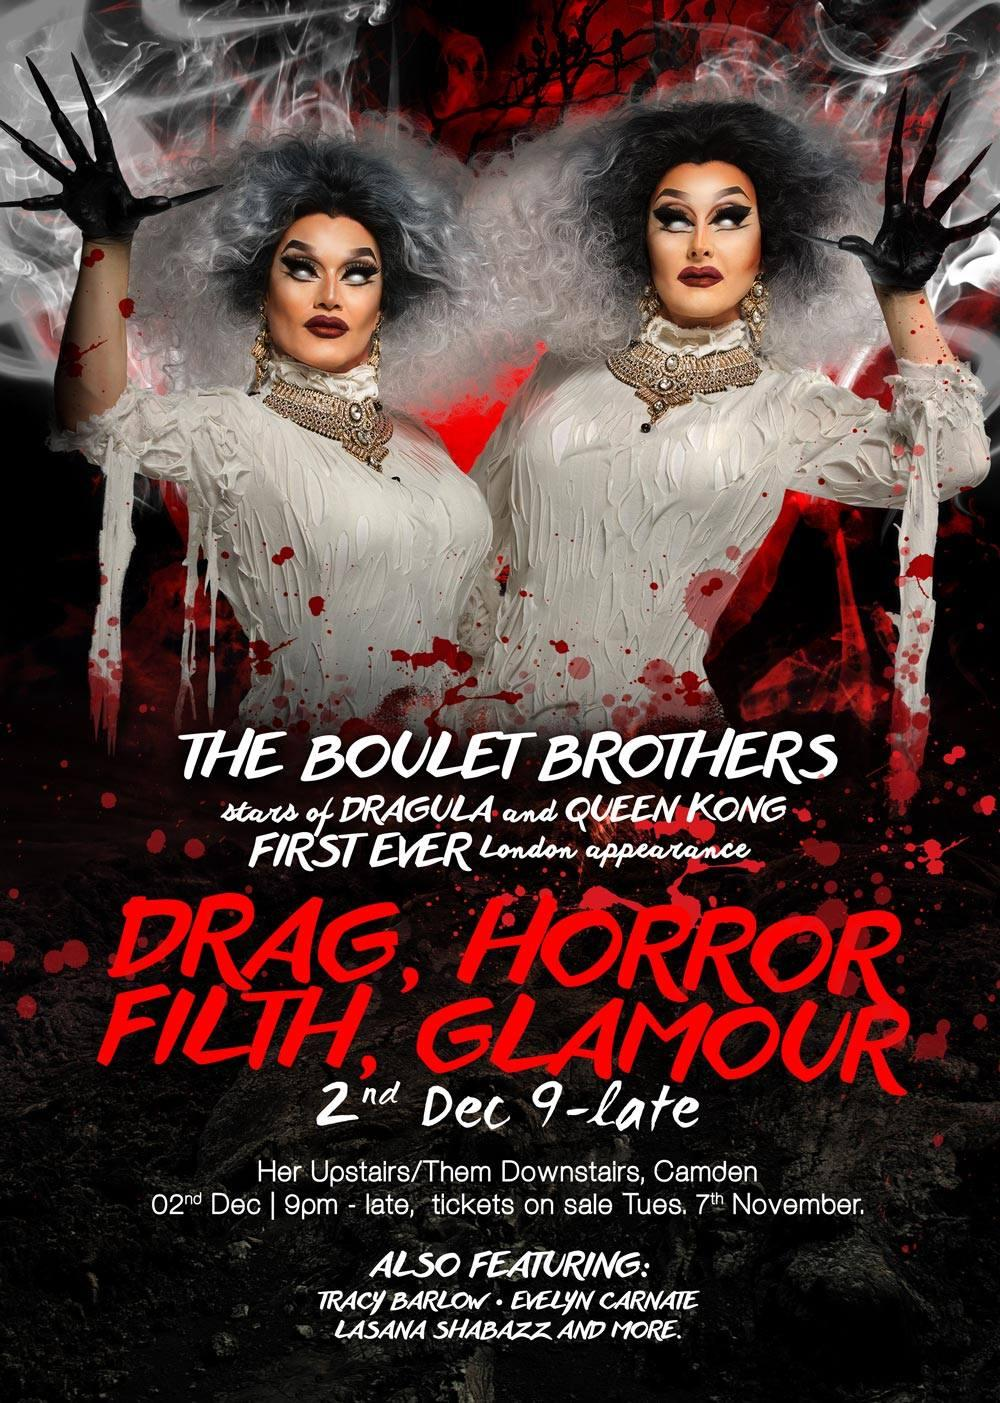 The Boulet Brothers - London